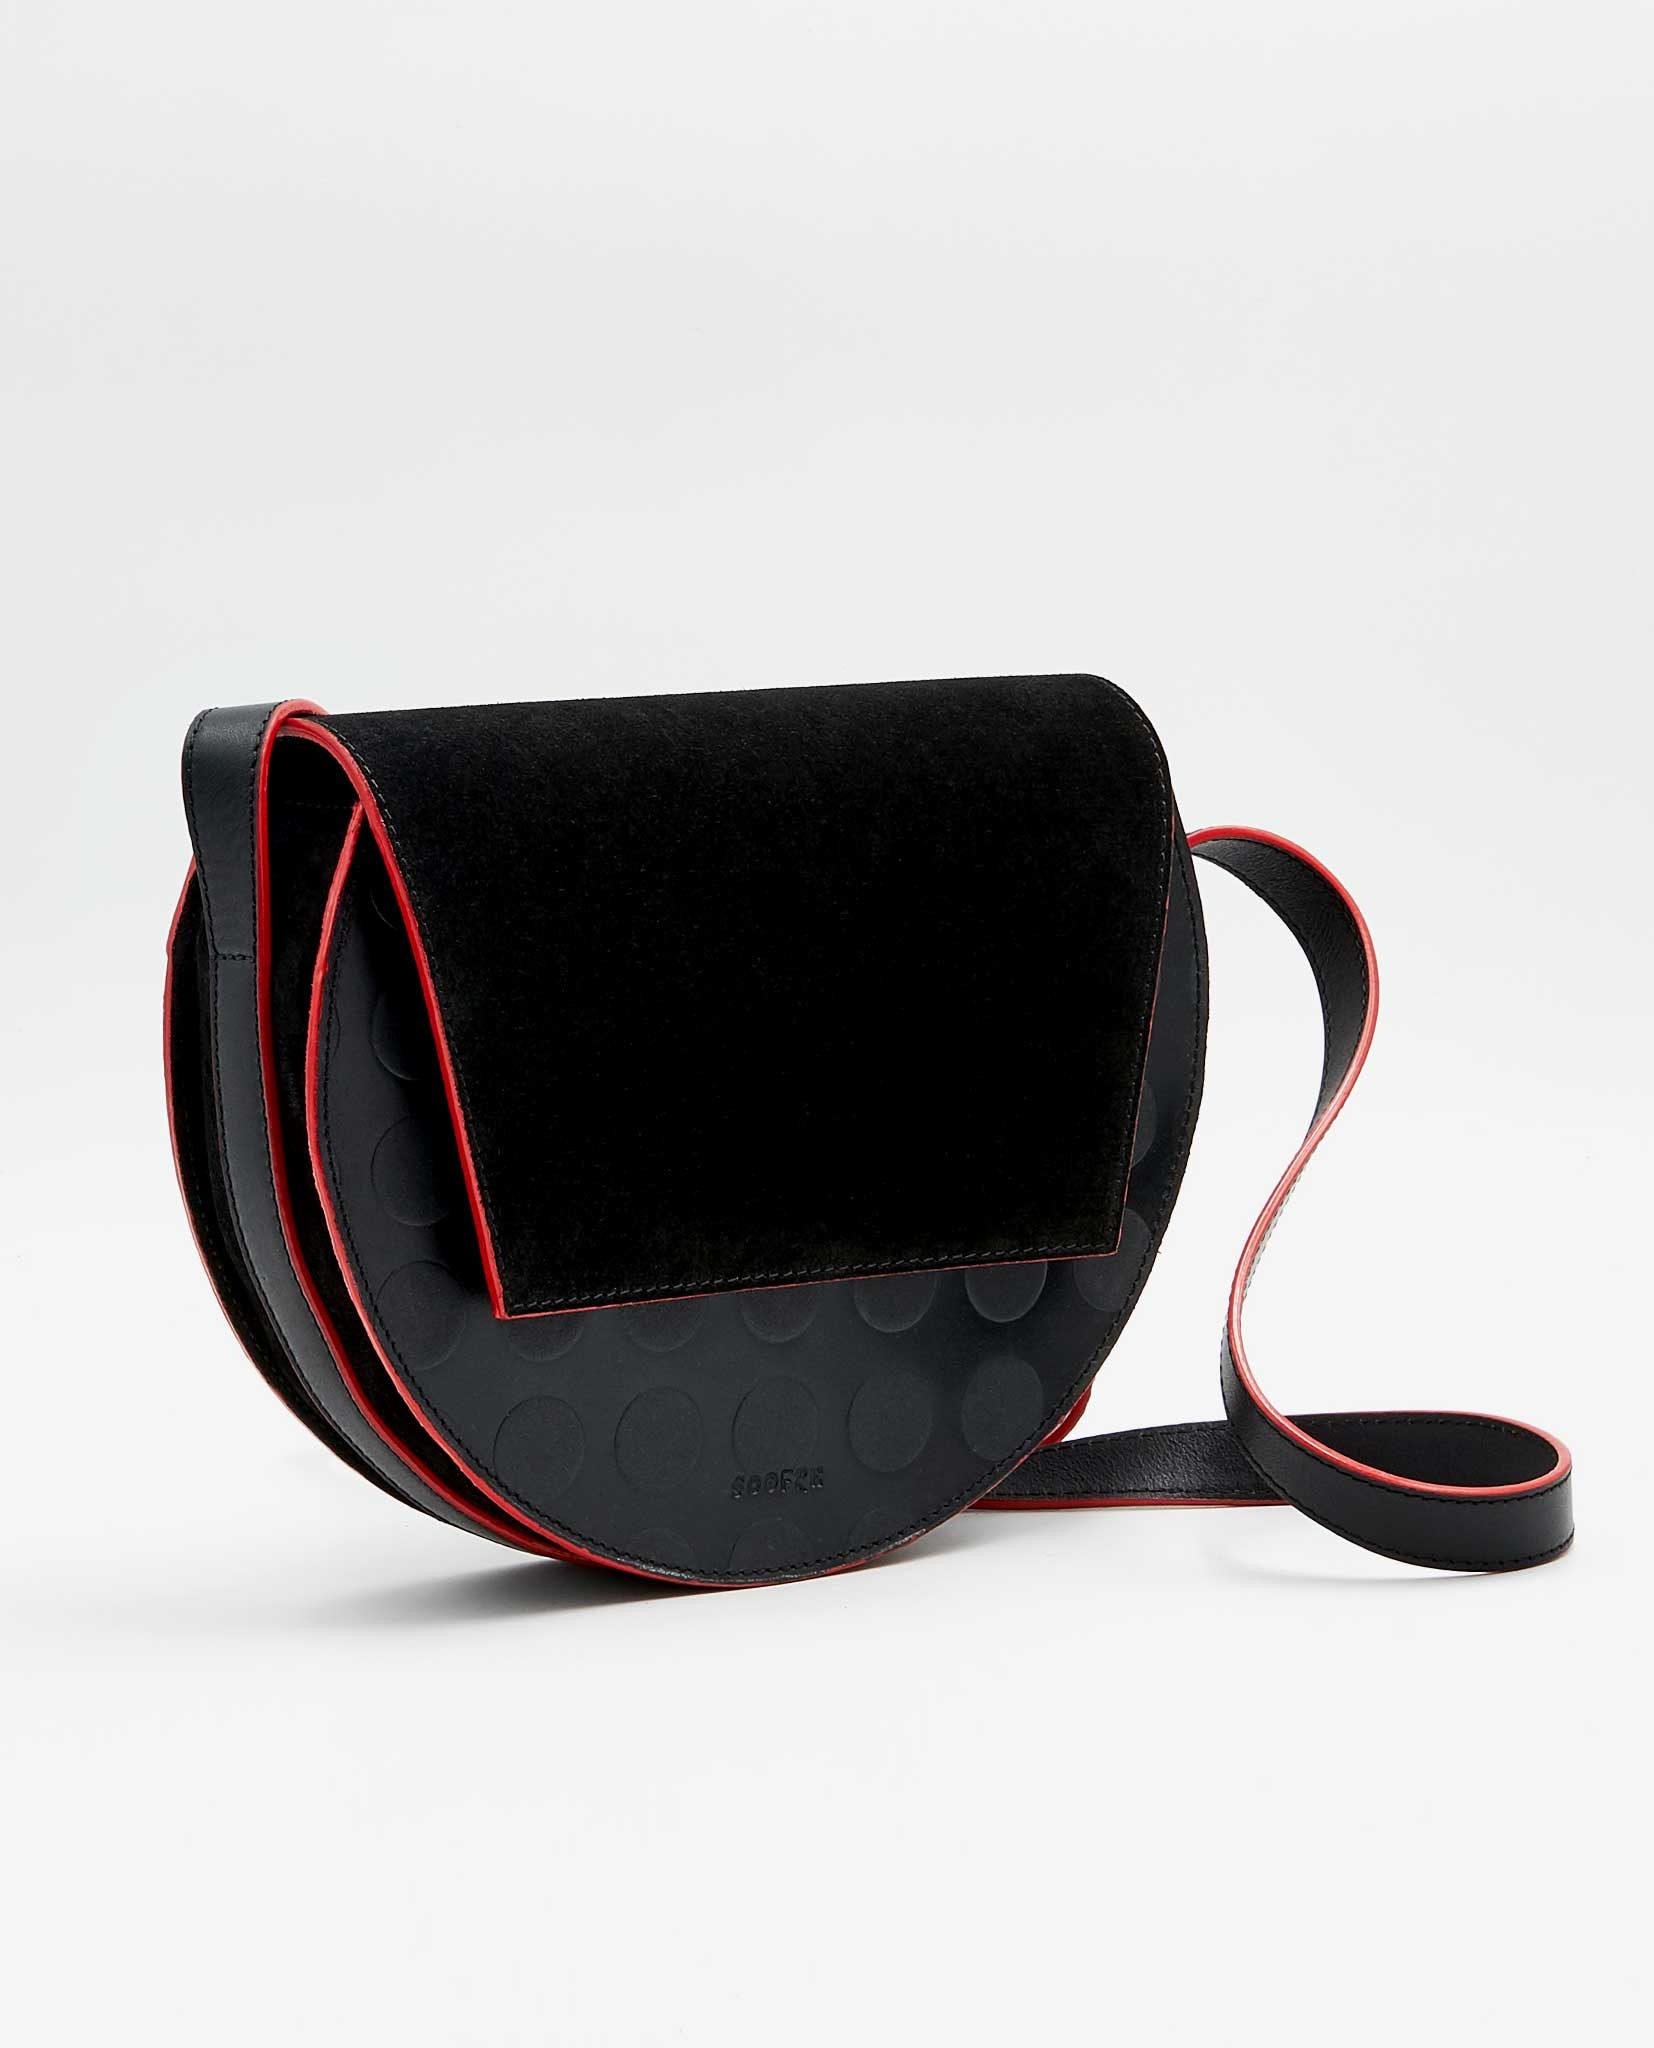 SOOFRE-Berlin-unique-Crossbody-Purse-dotted-black-black-red-SIDES